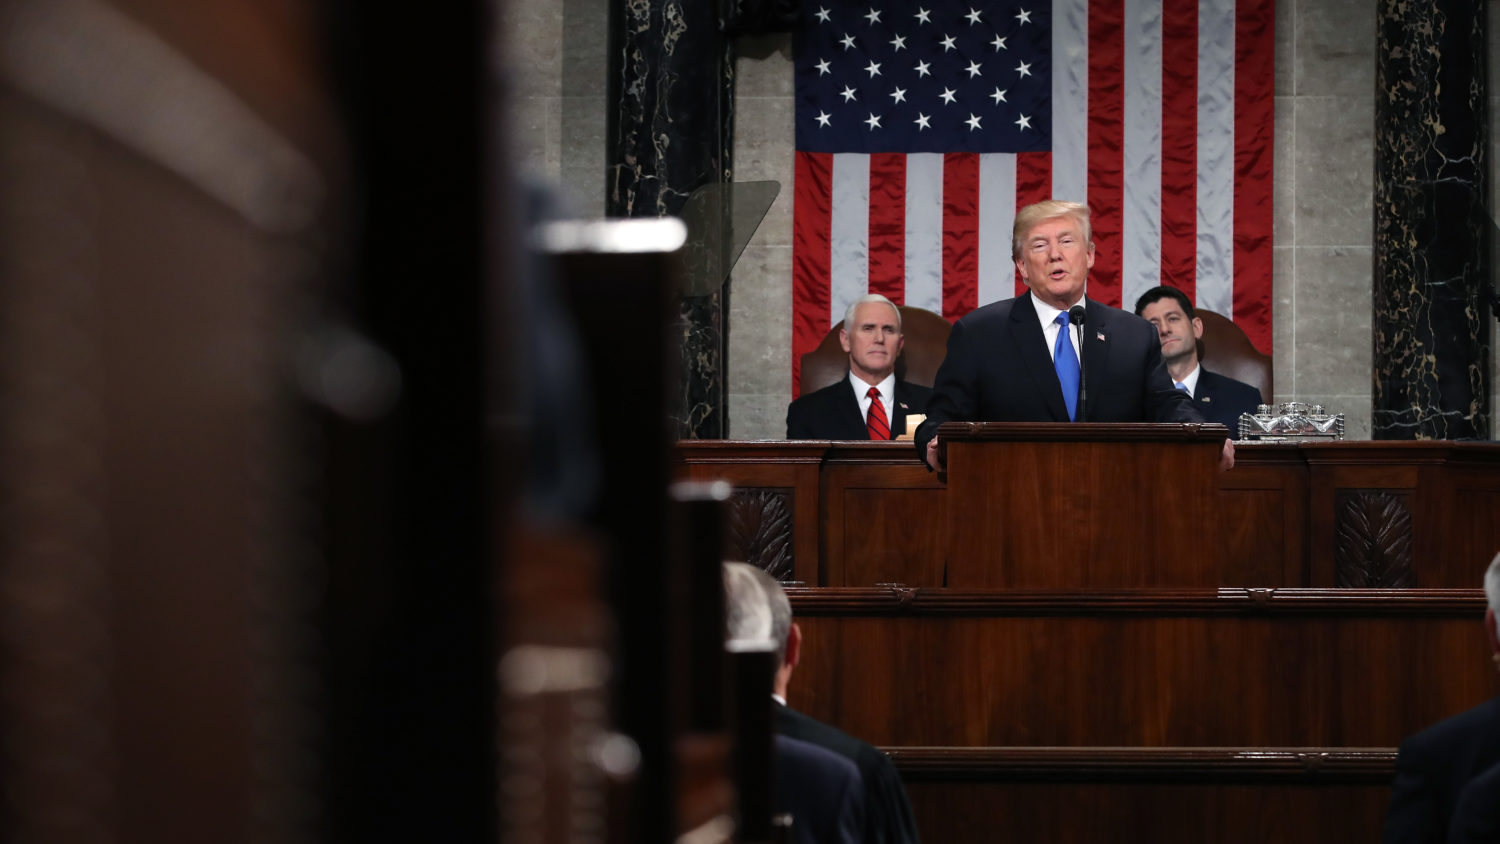 White House Moves Forward With State Of The Union Plans